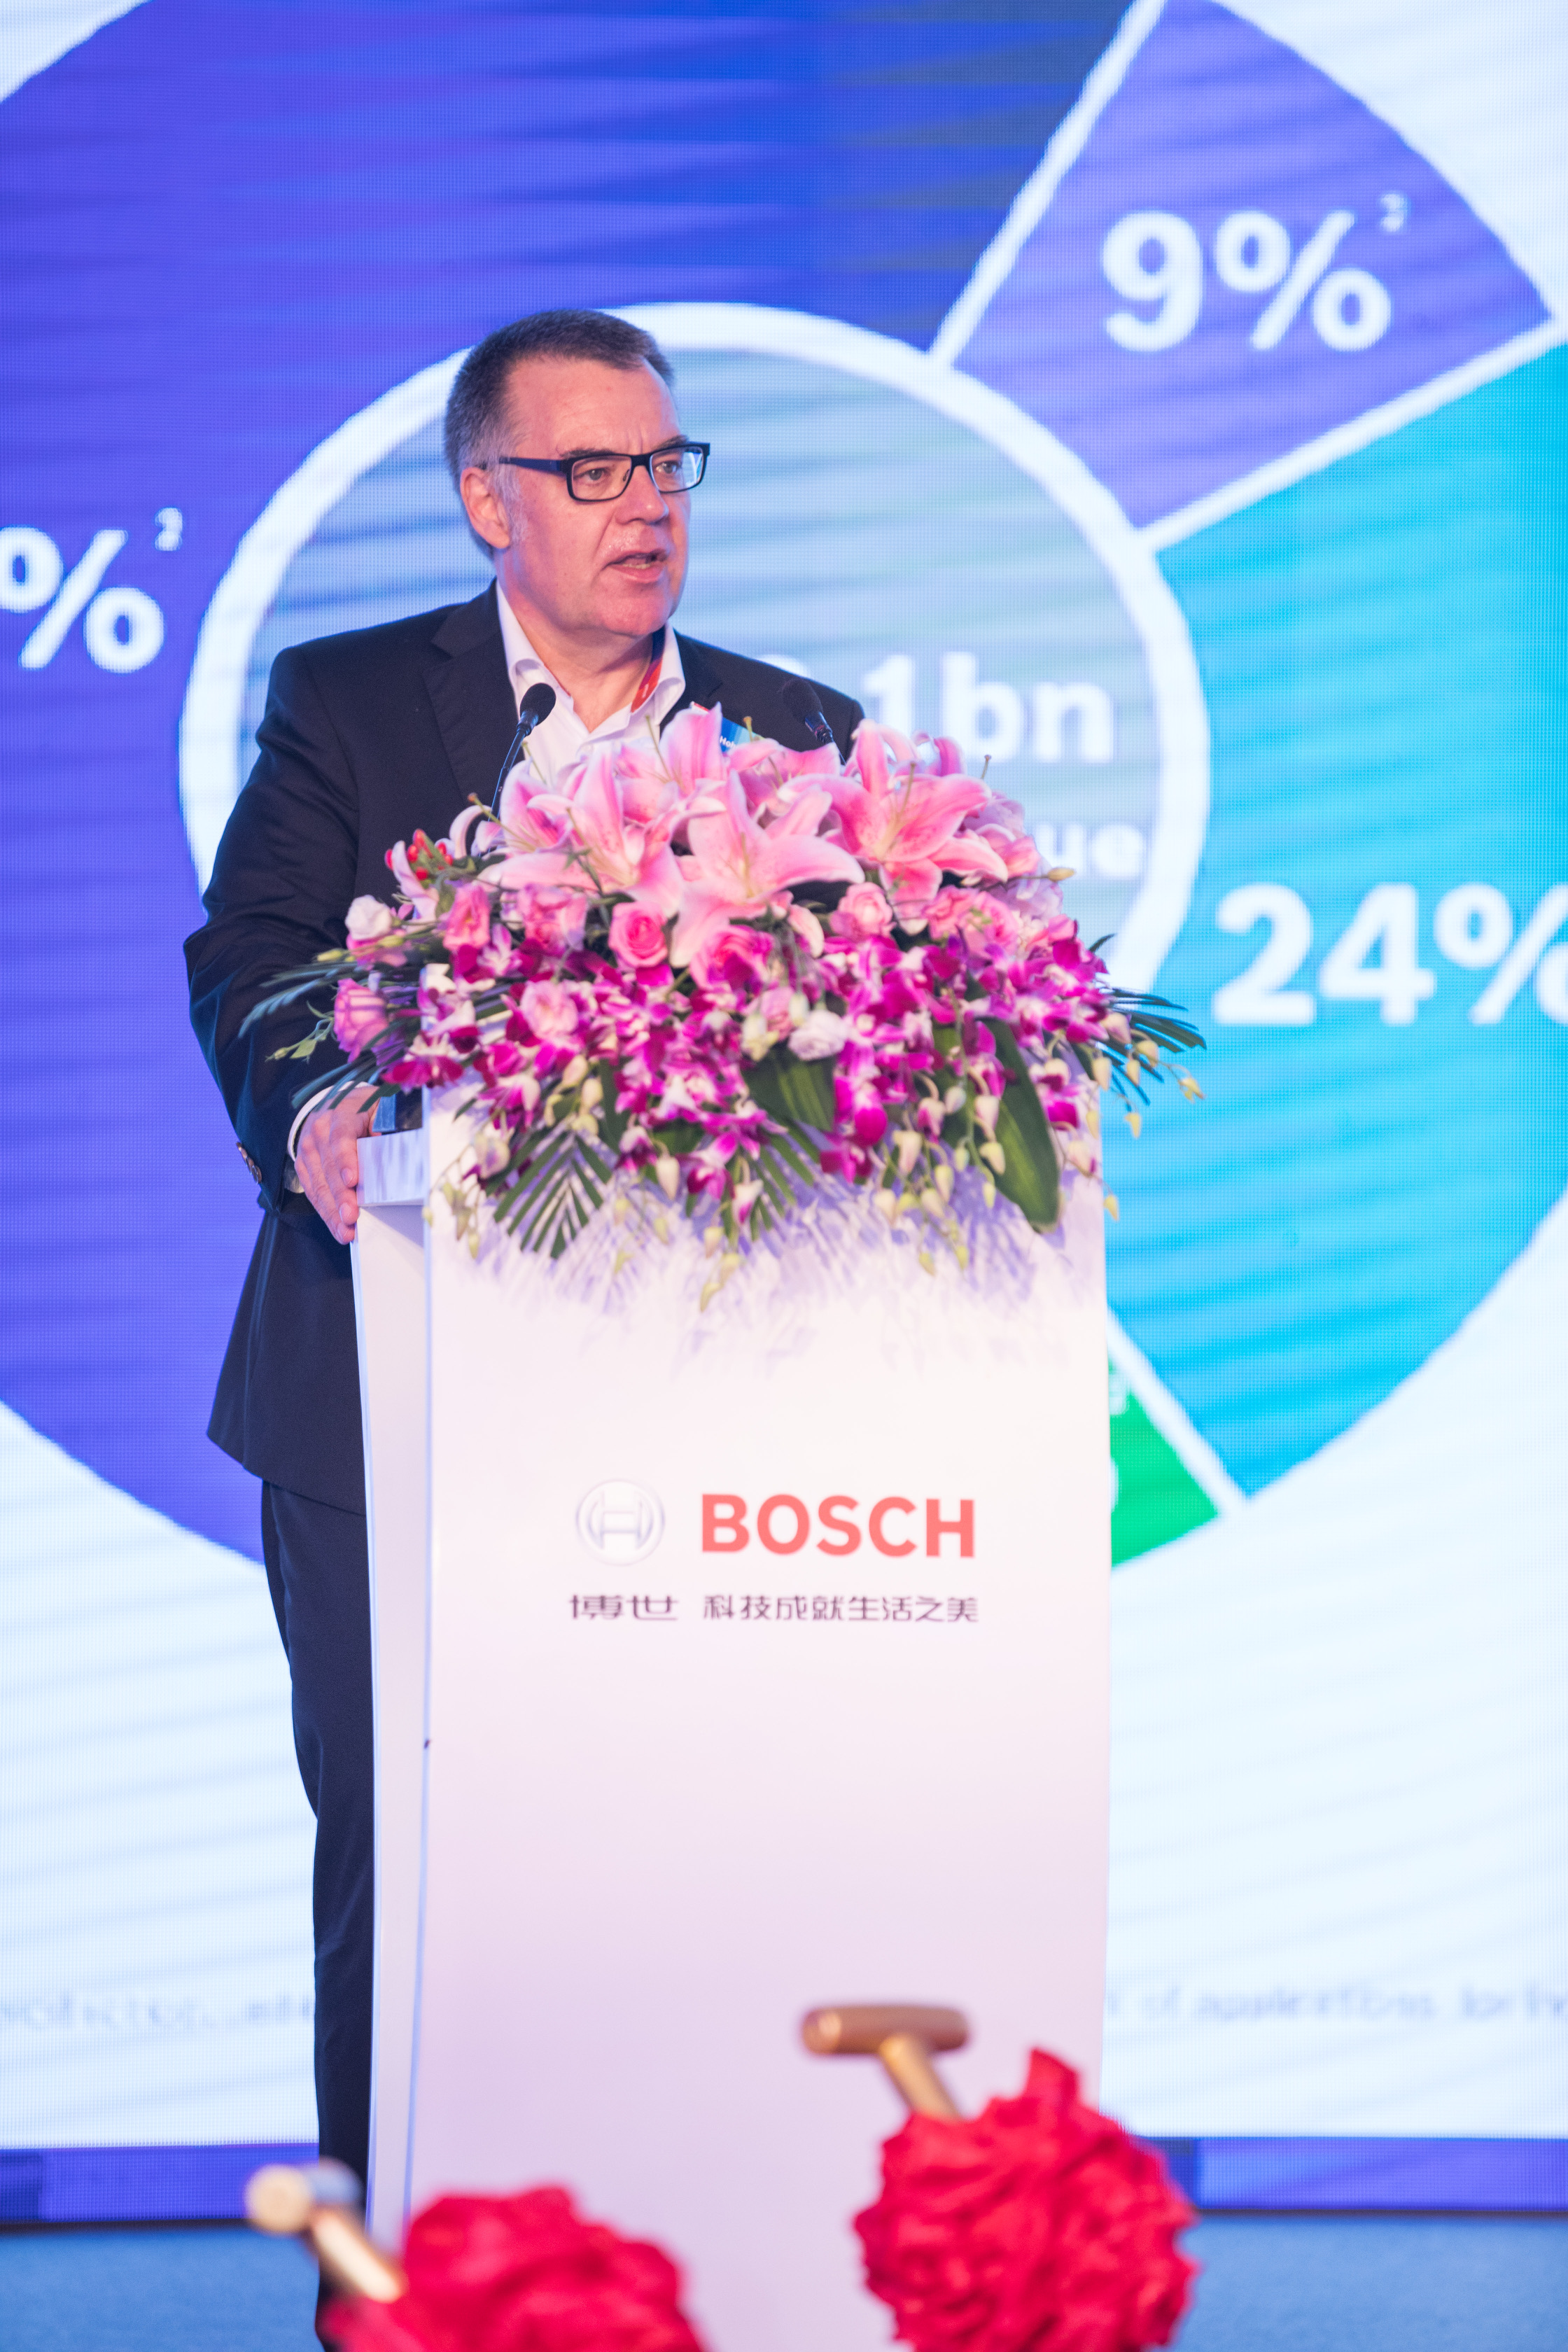 Dr. Dirk Hoheisel, member of the board of management of the Bosch Group, in Nanjing